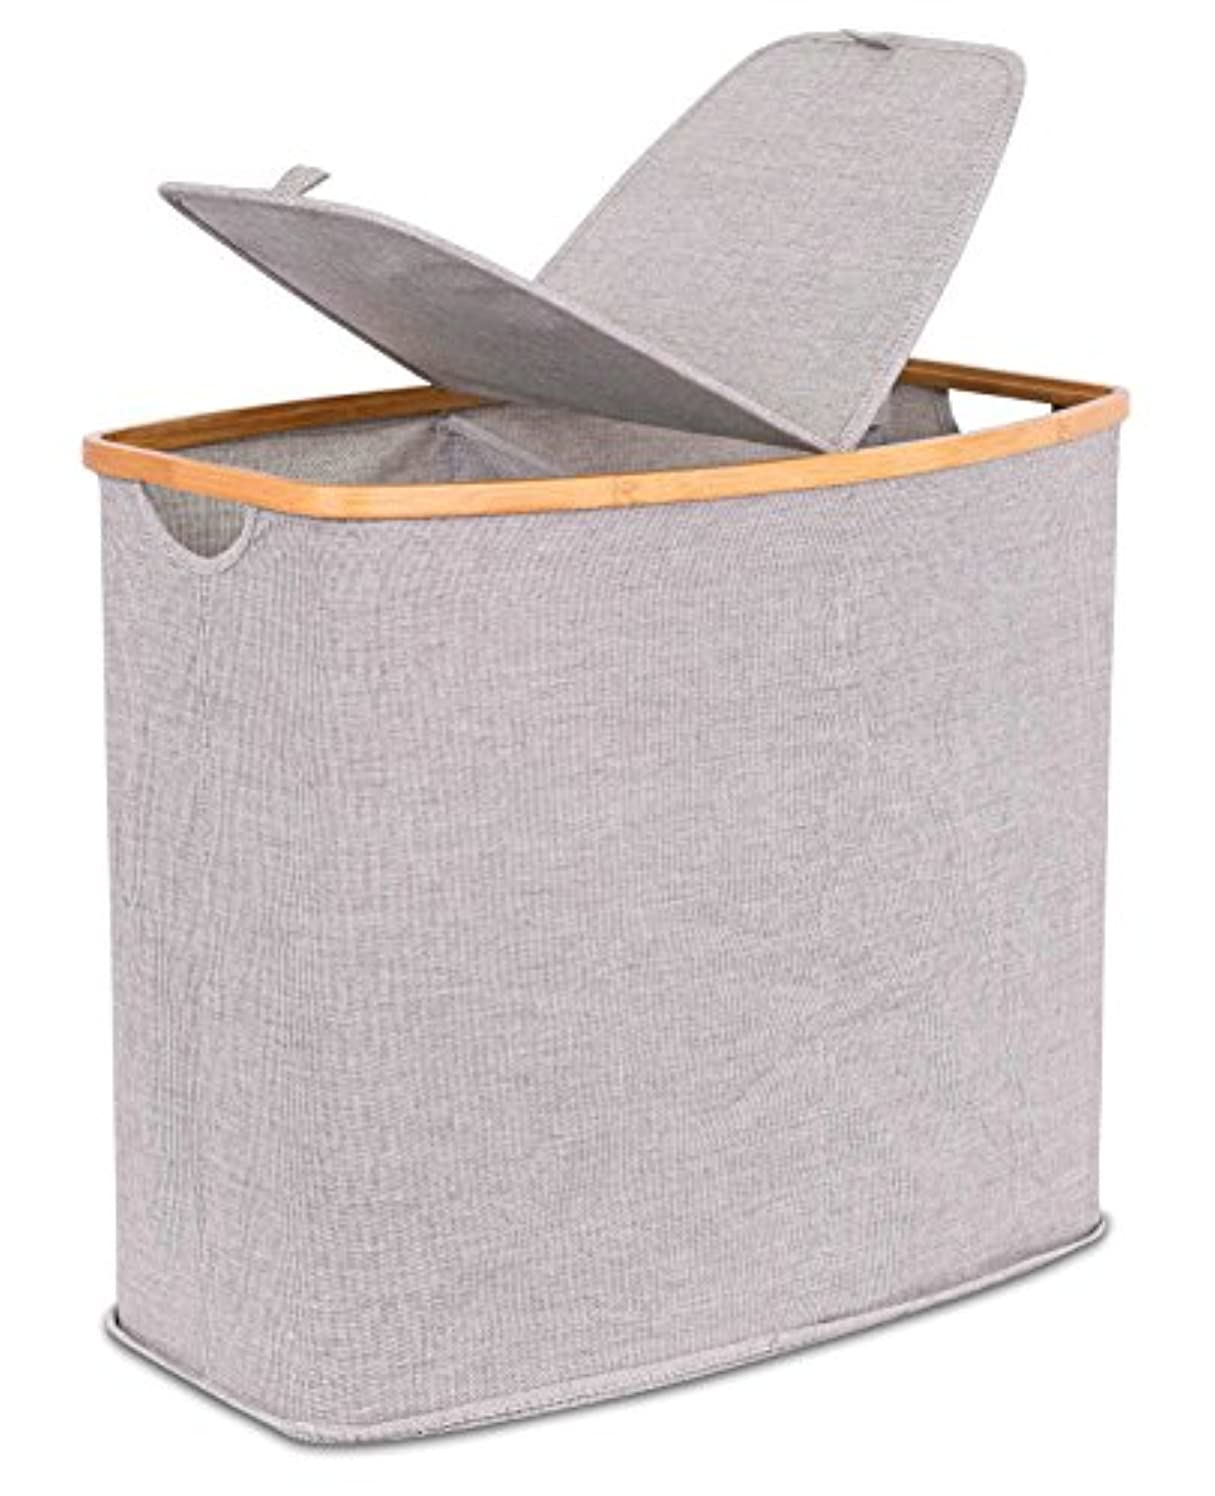 BIRDROCK HOME Divided Bamboo & Canvas Hamper   Double Laundry Basket with Lid   Modern 2 Section Foldable Hamper   Cut Out Handles   Grey Narrow Design   Great for Kids Adults